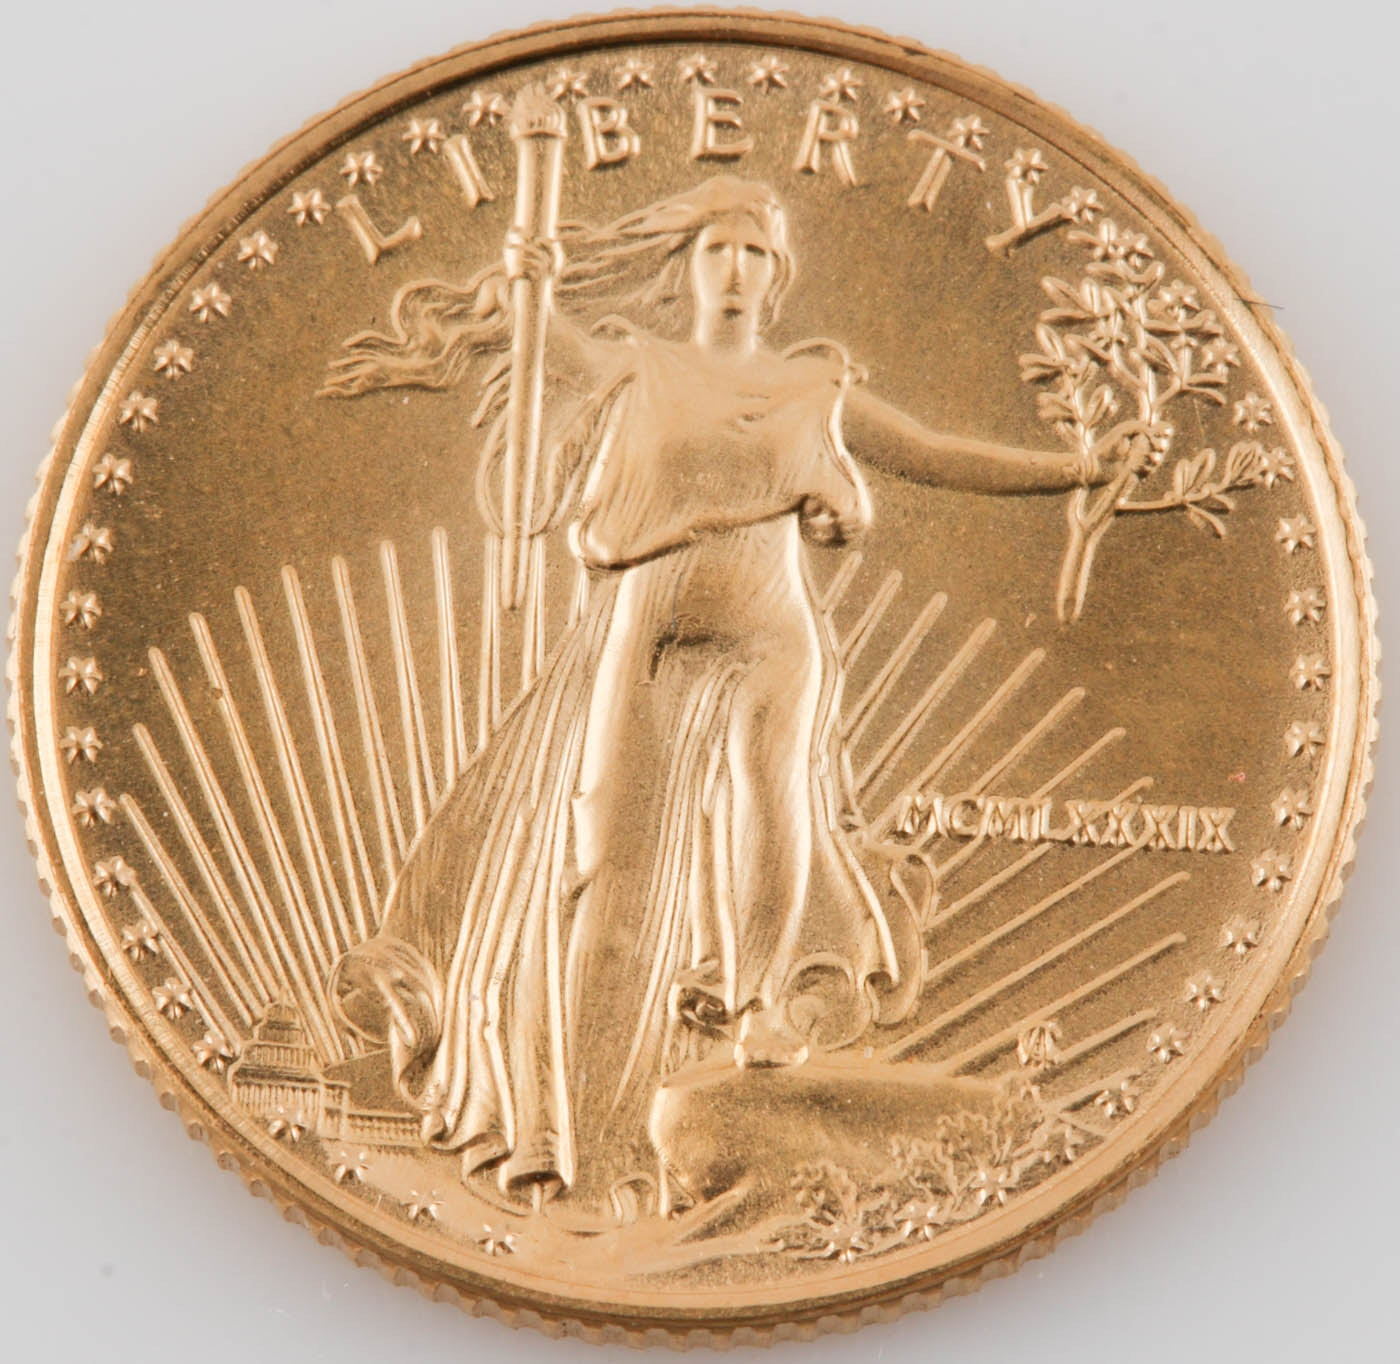 1989 $5 (1/10 ounce) Gold Eagle